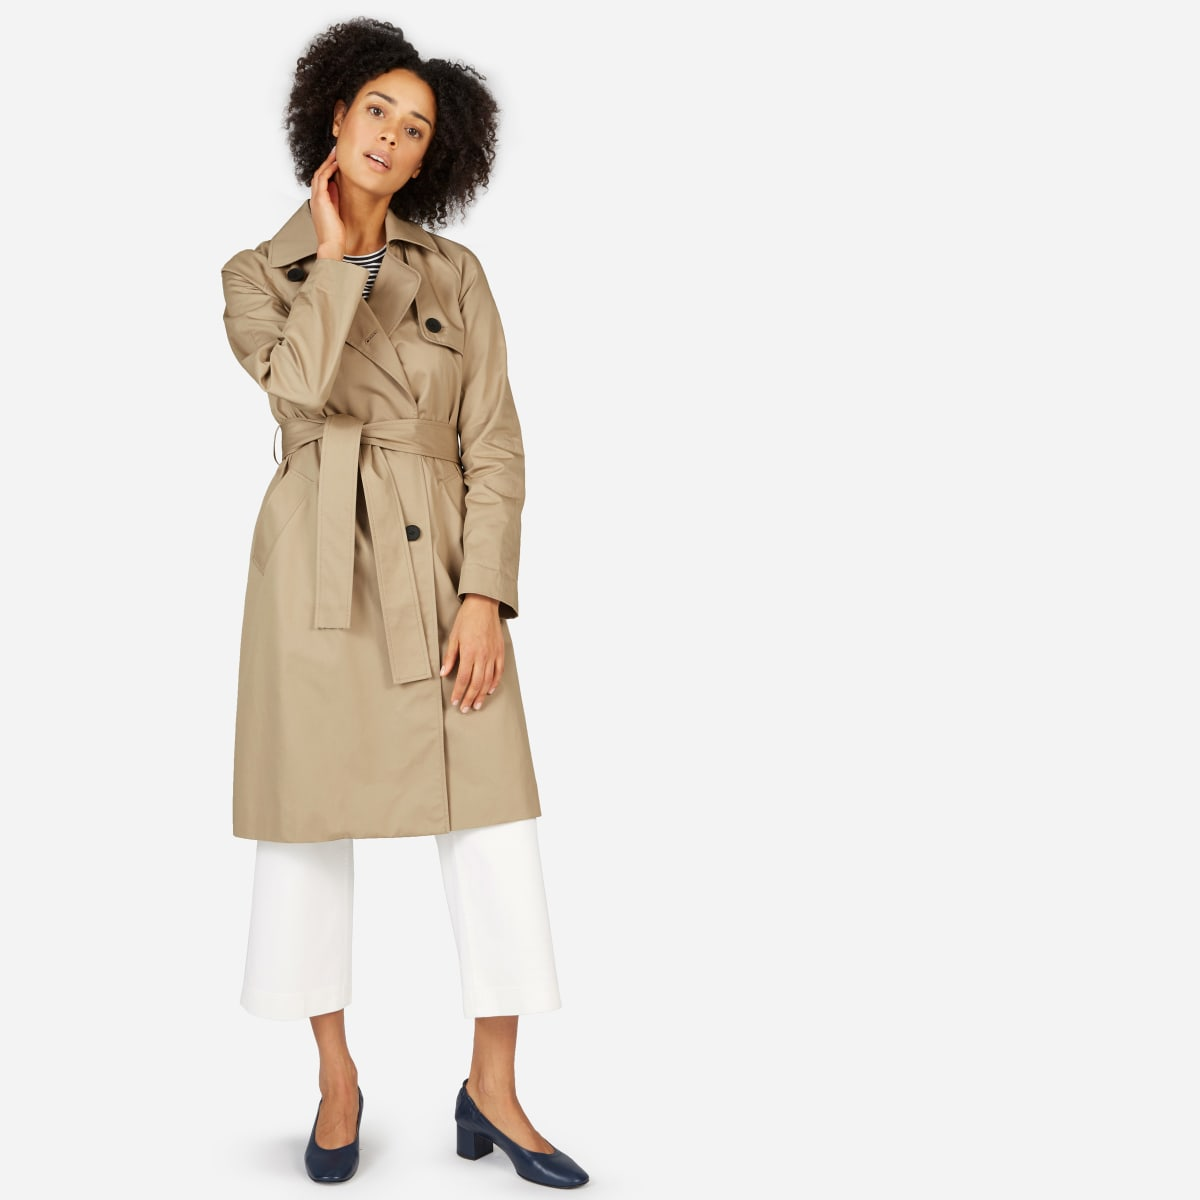 Drape Trench Coat by Everlane, available on everlane.com for $148 Angelina Jolie Outerwear Exact Product